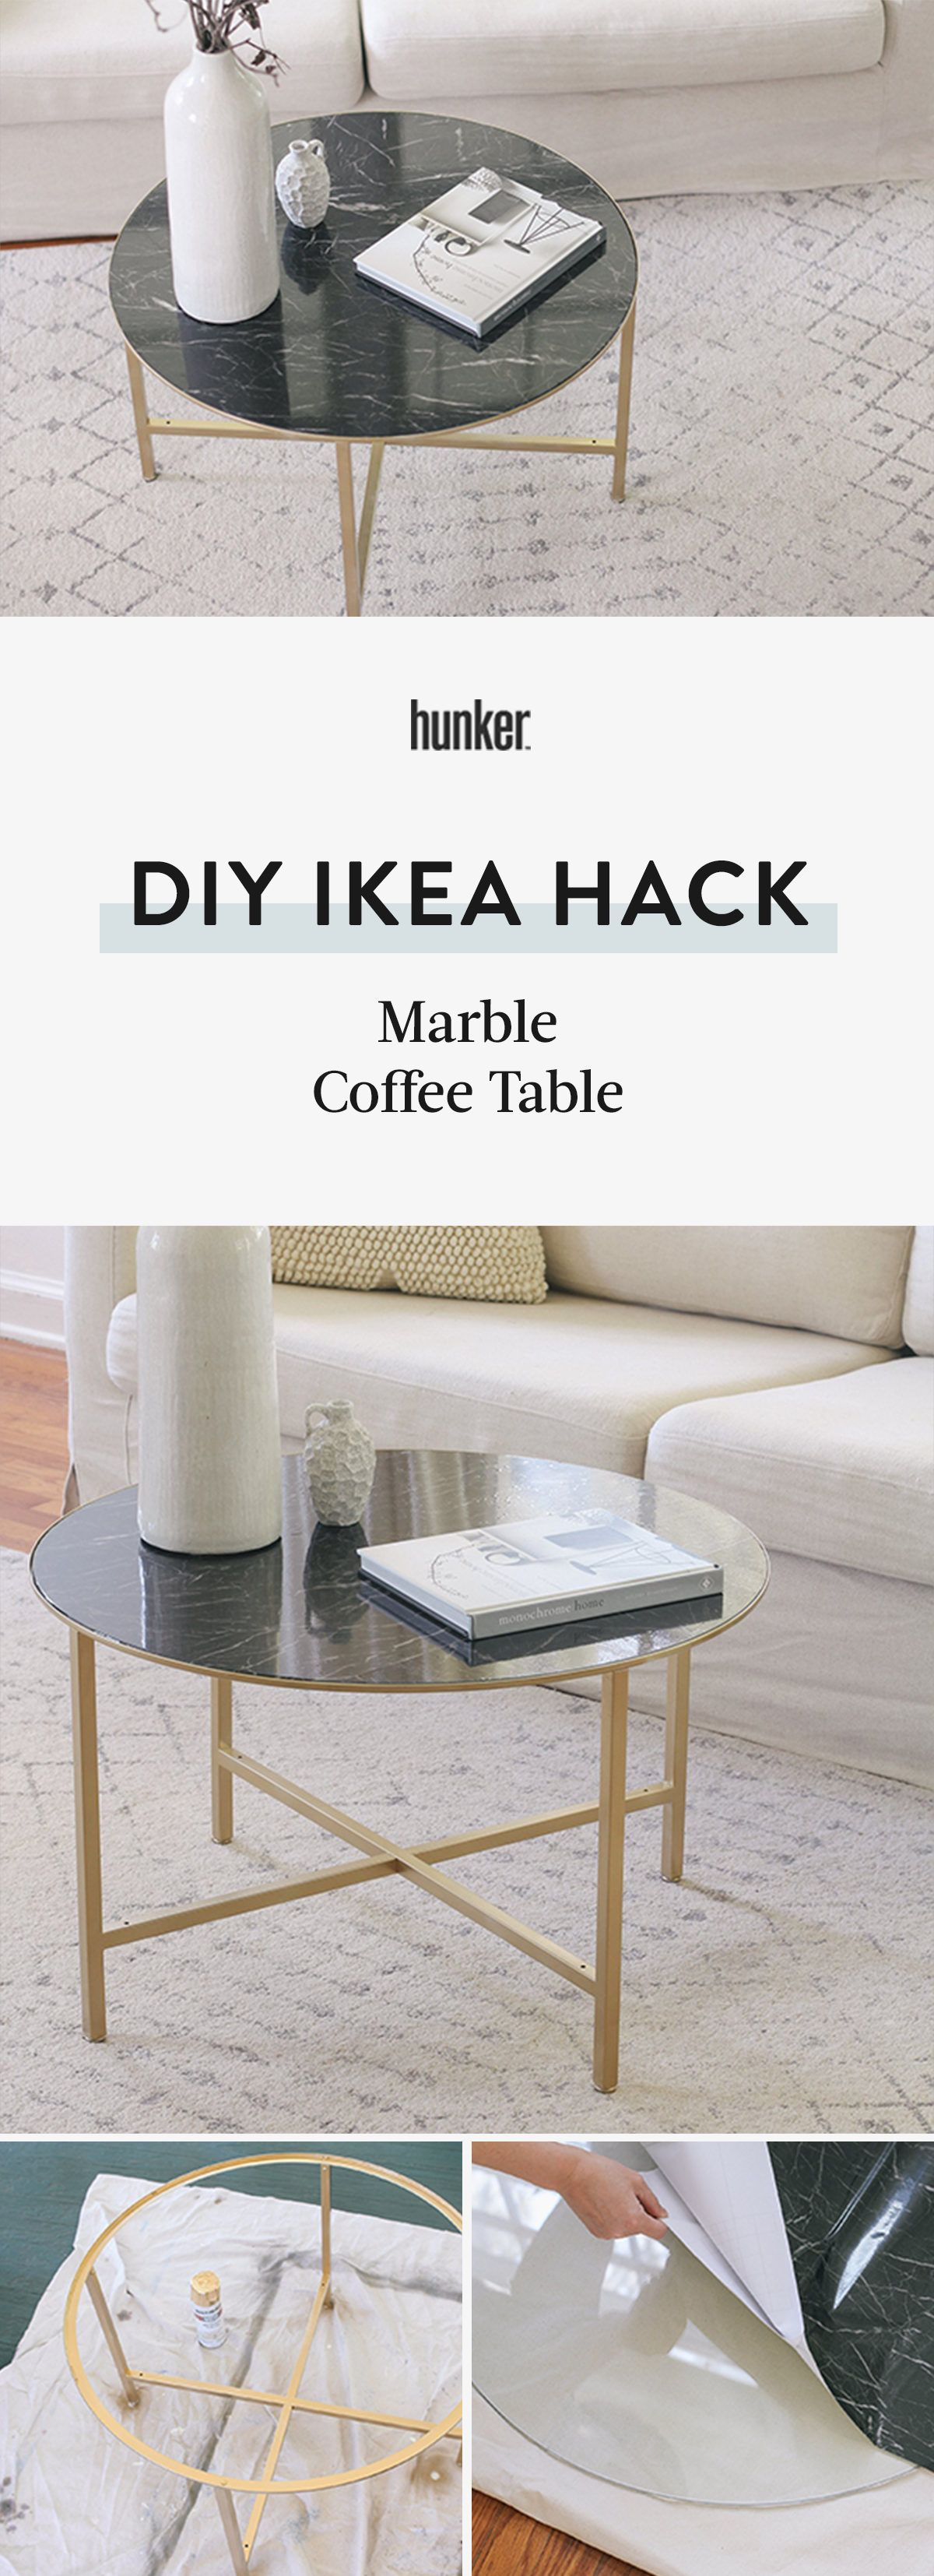 Vittsjö Couchtisch Hack You Need A New Coffee Table And This Ikea Hack Delivers (caution: Serious Chicness Ahead) | Hunker | Coffee Table, Ikea Diy Table, Diy Marble Table